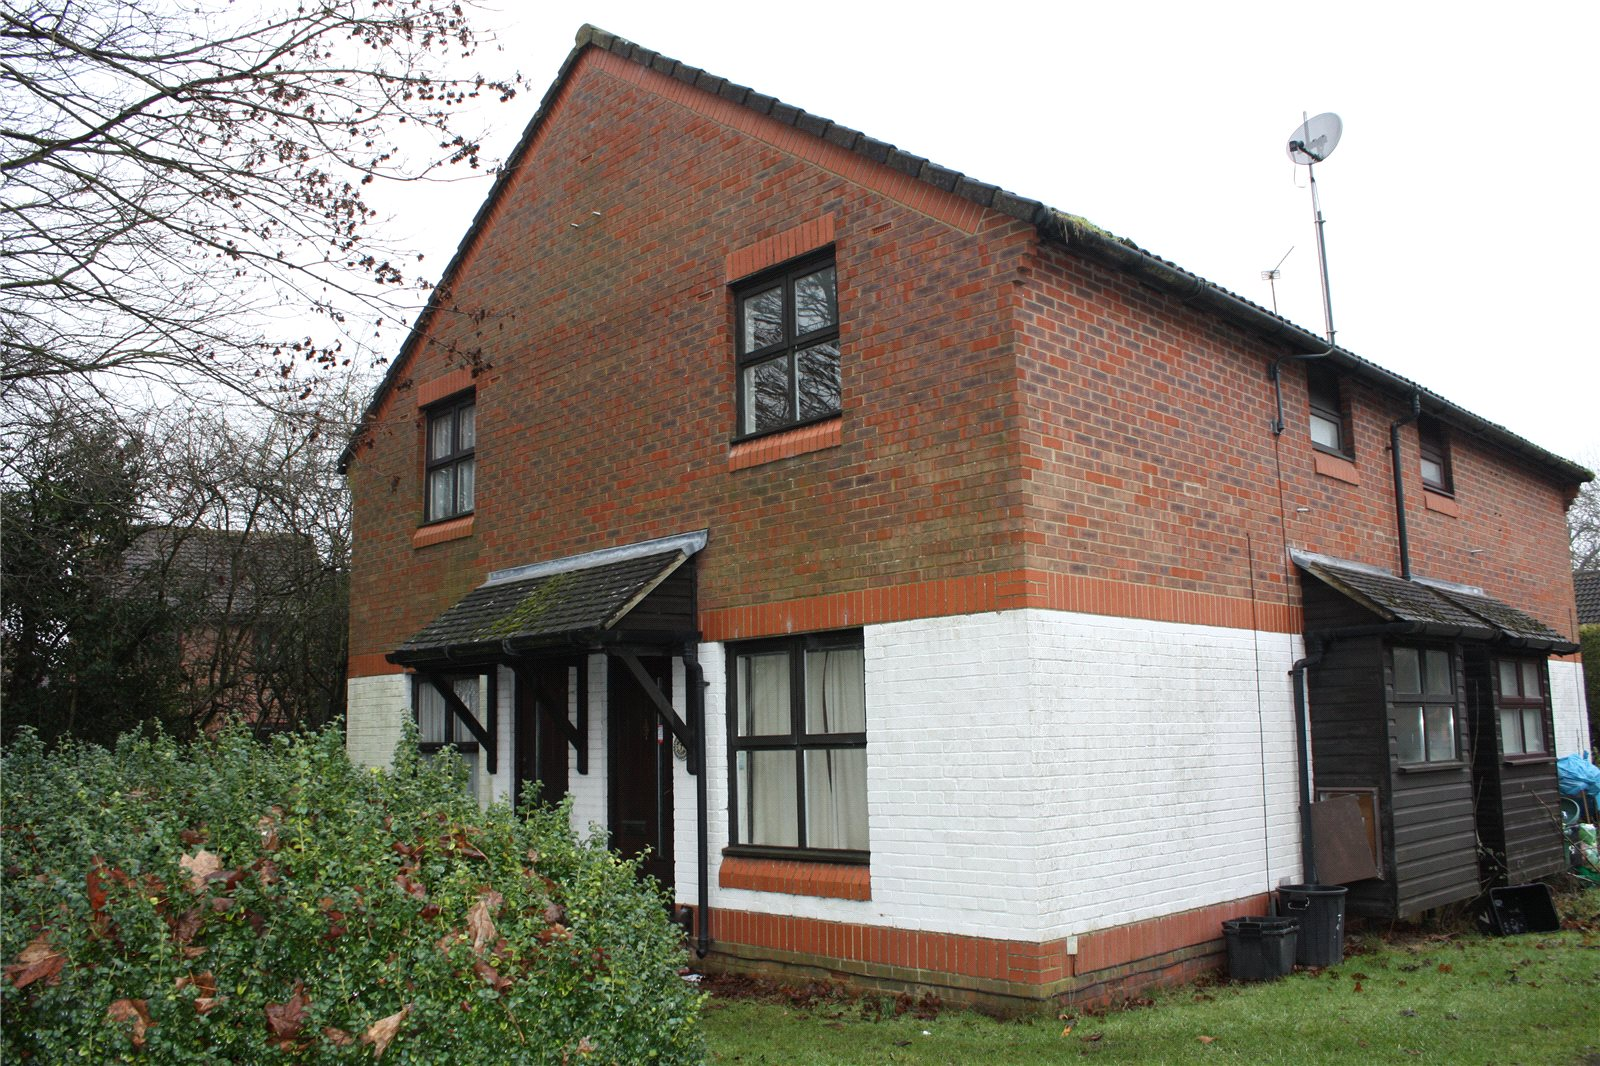 Parkers earley 1 bedroom house to rent in nutmeg close - 1 bedroom house to rent in reading ...